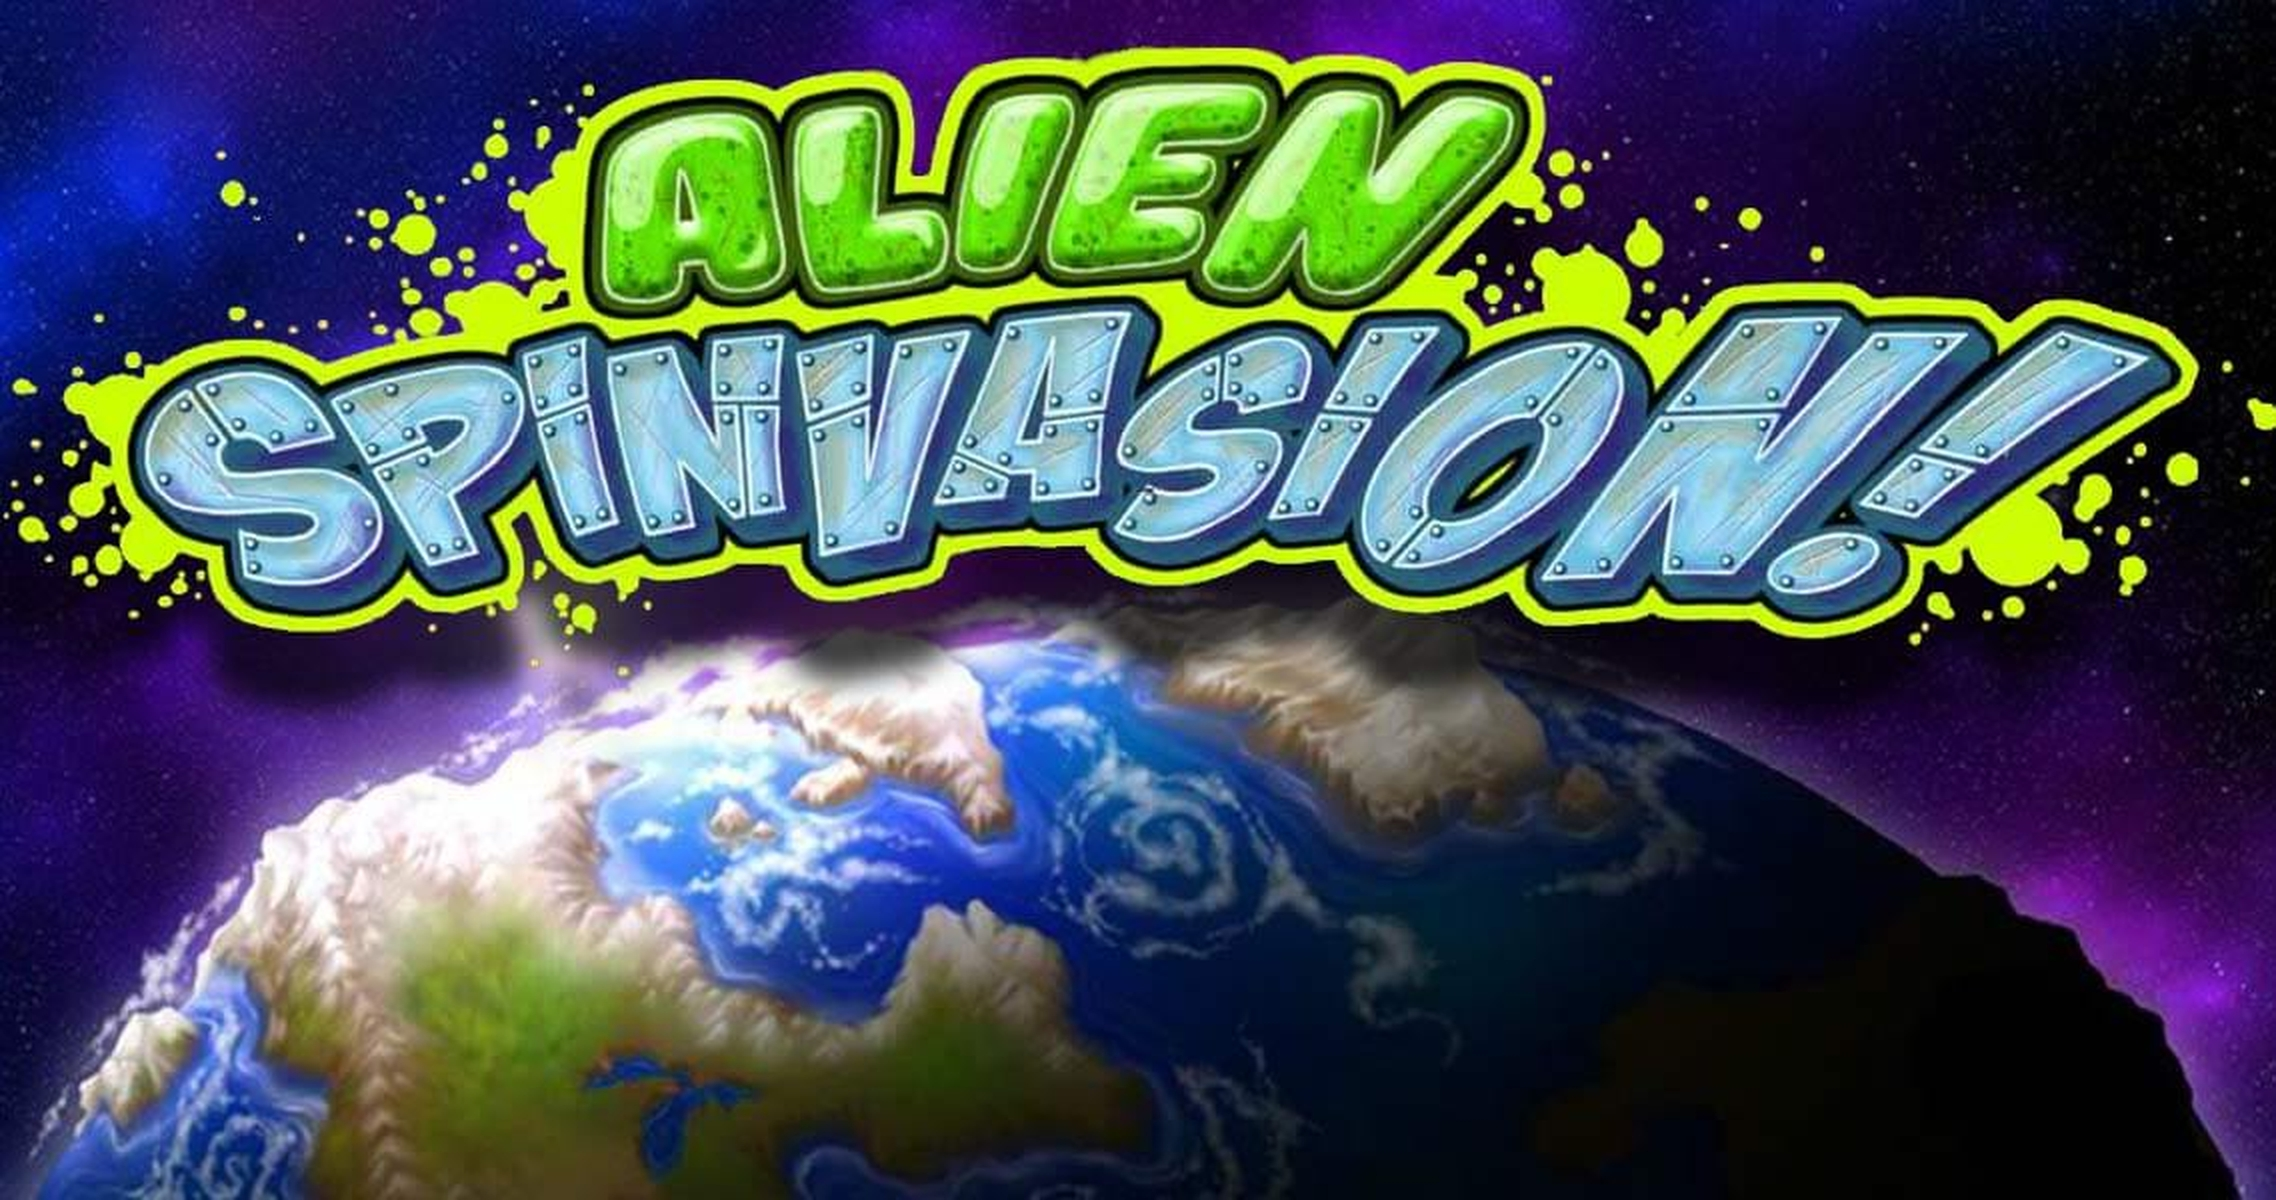 The Alien Spinvasion! Online Slot Demo Game by Rival